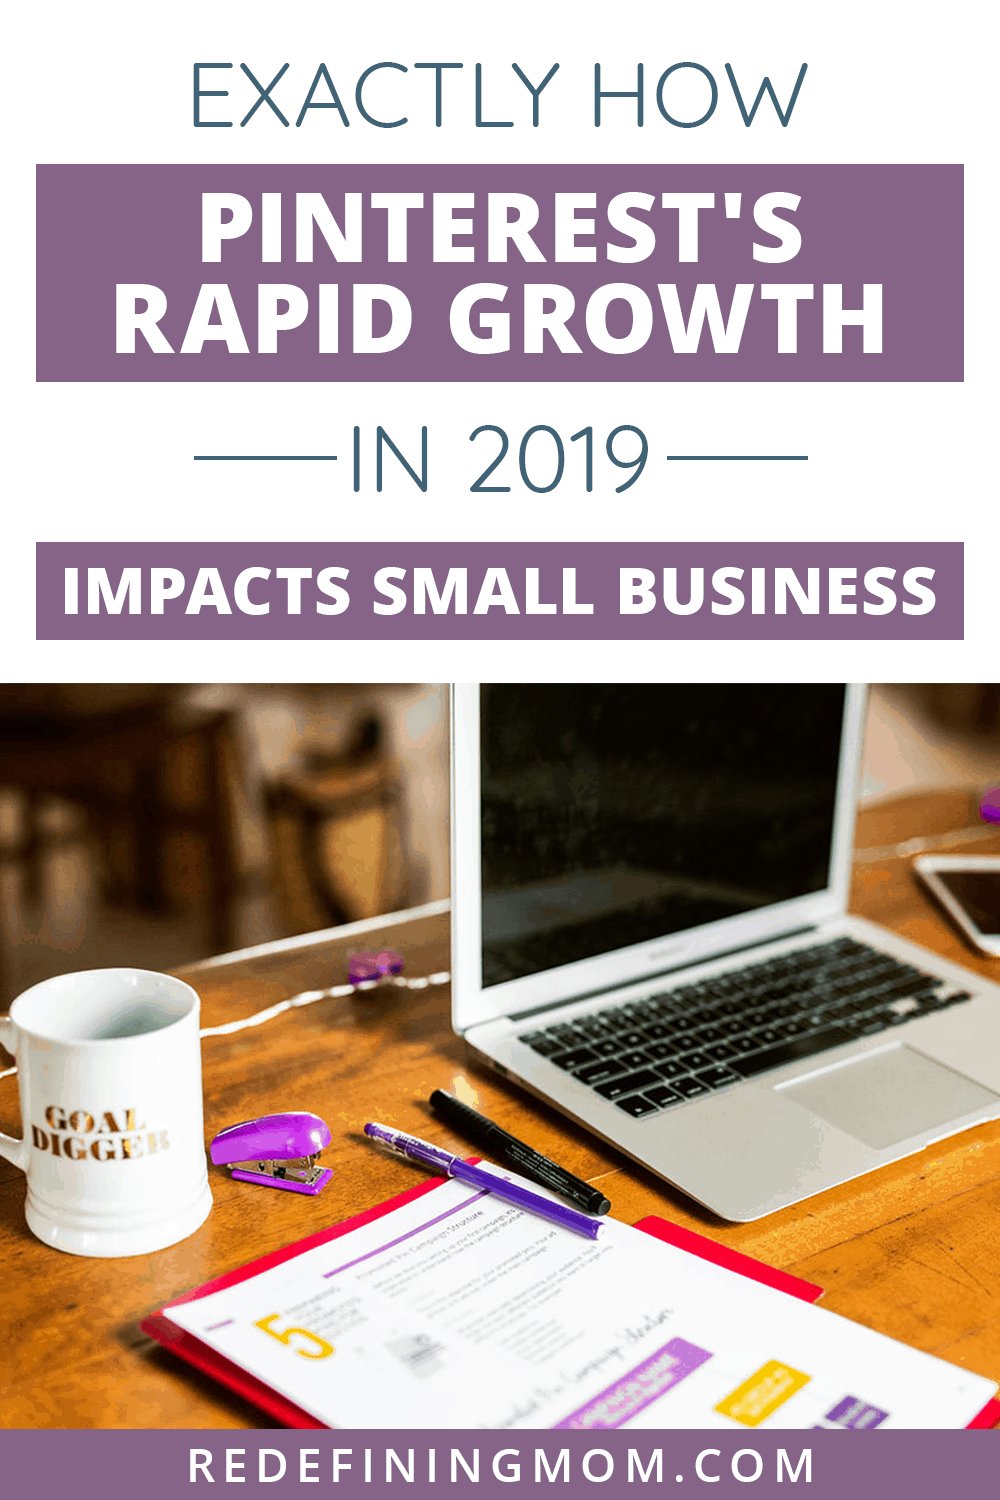 how pinterest growth in 2019 affects small business owners